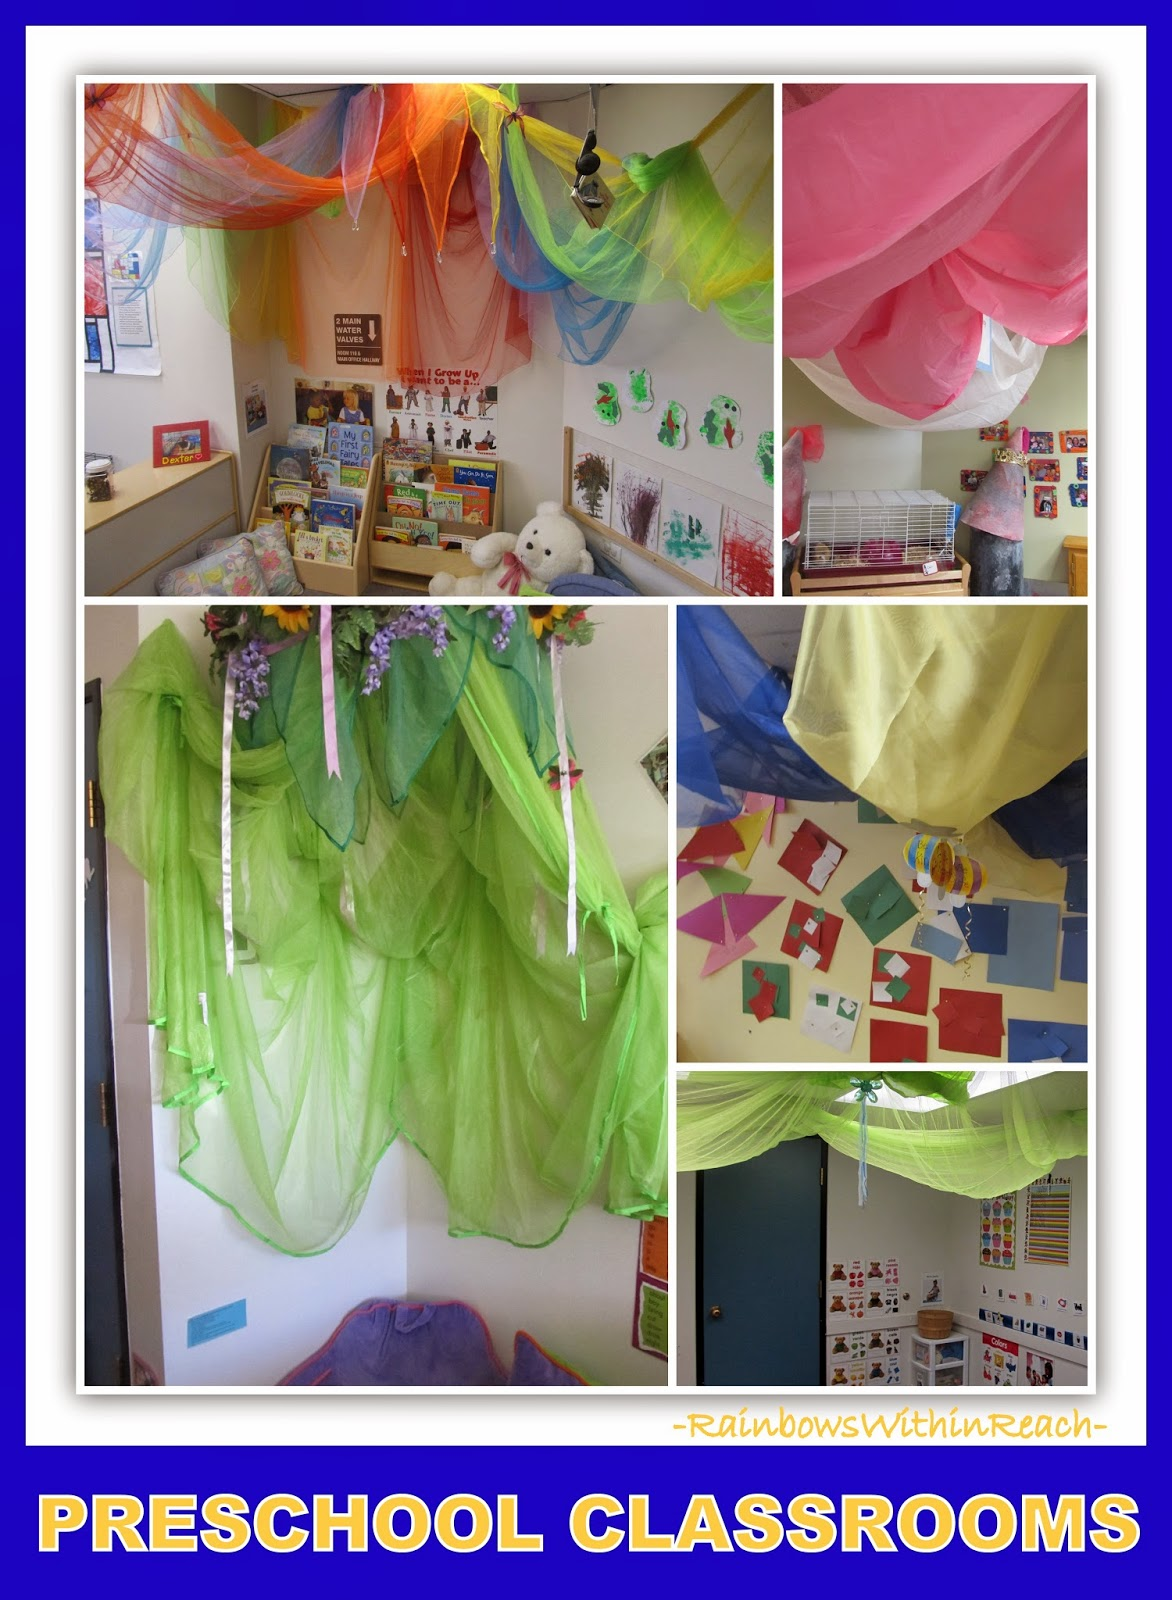 Preschool Classroom Reading Corners via RainbowsWithinReach